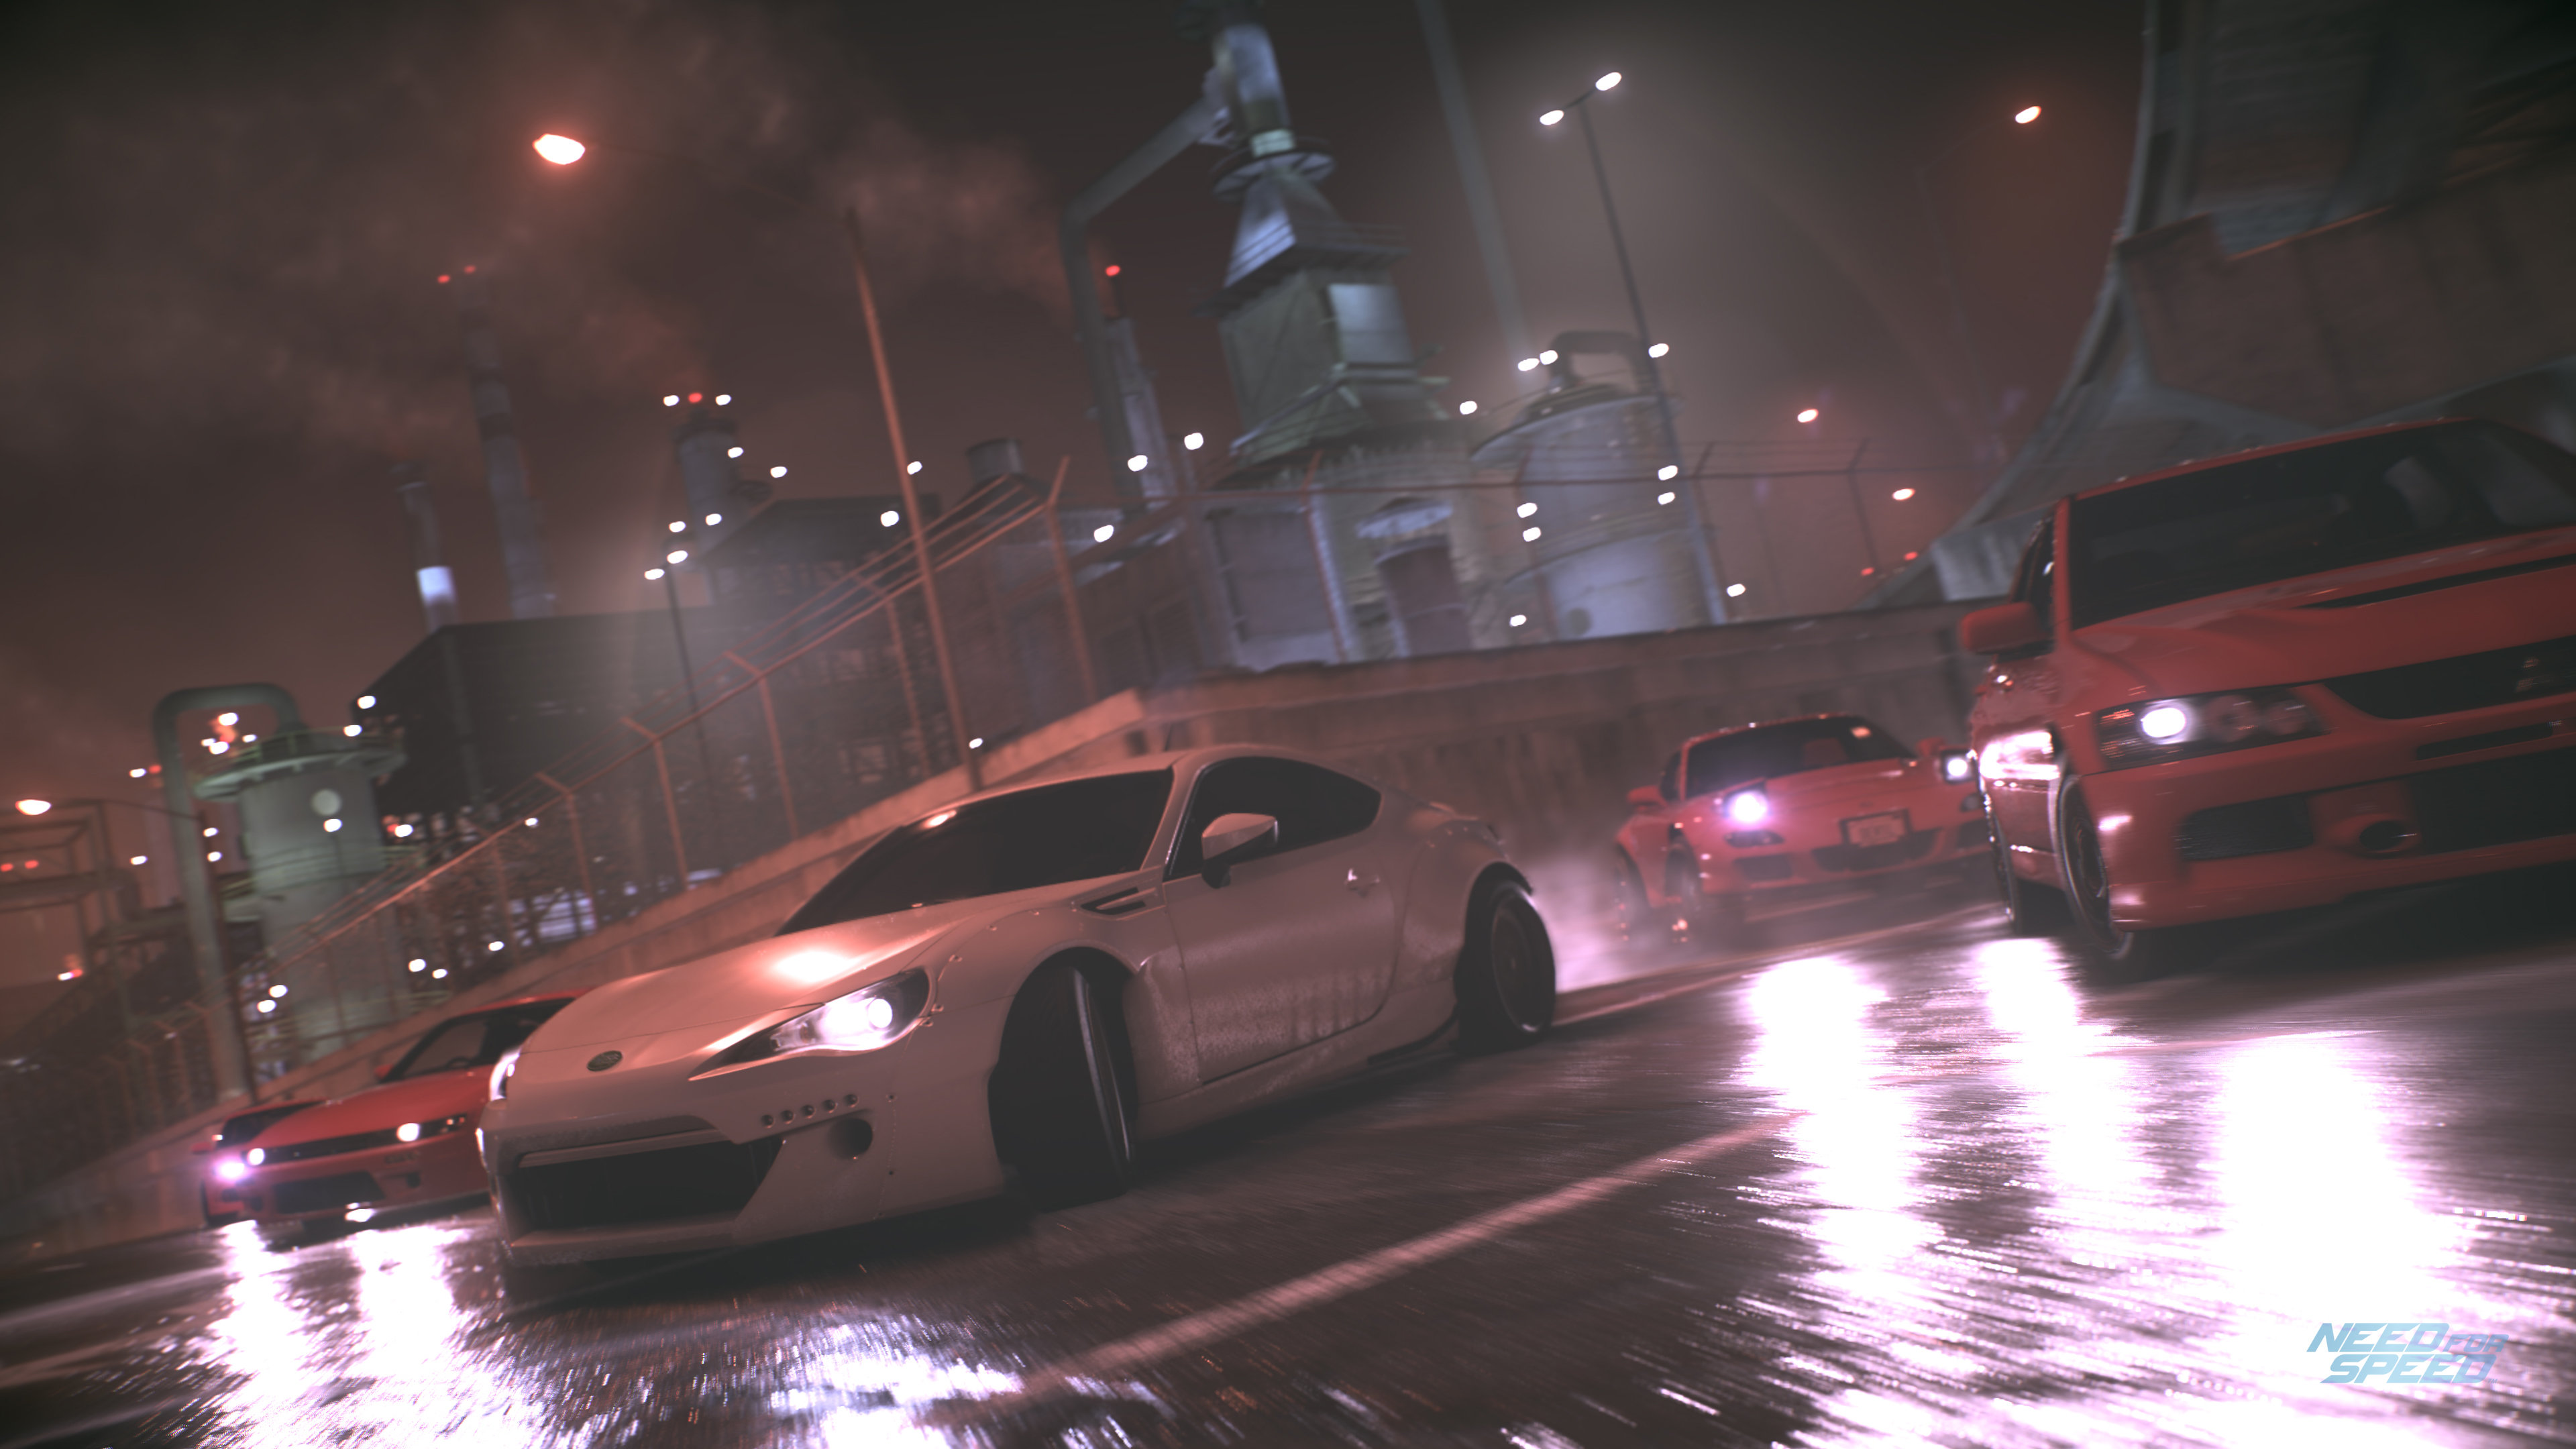 Need For Speed 2015 Wallpapers 3840x2160 Ultra Hd 4k